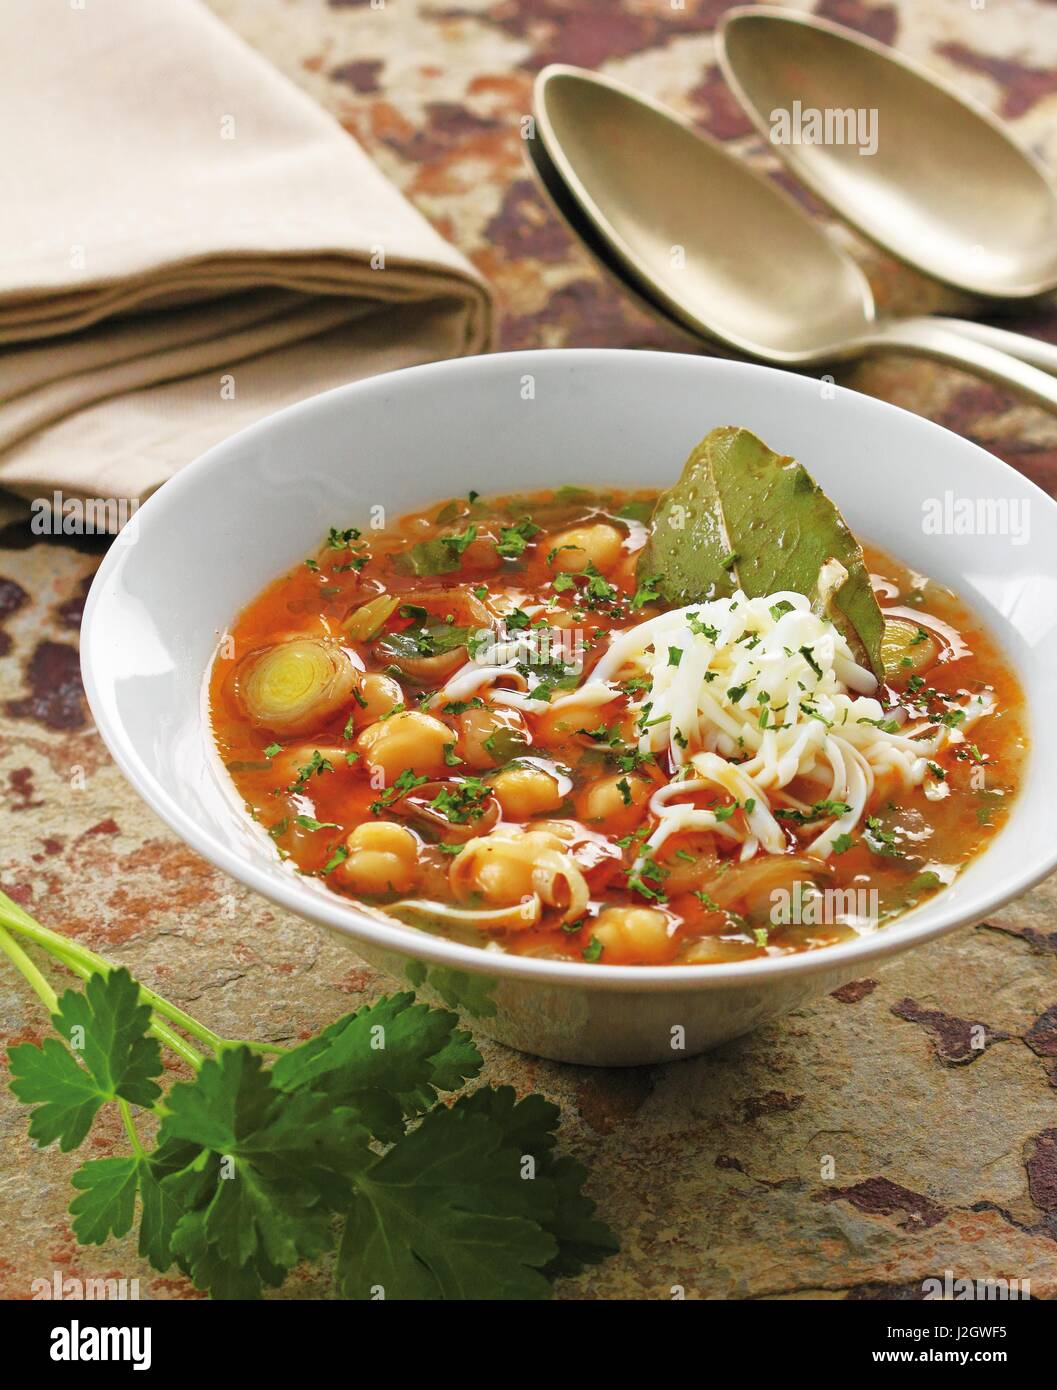 Hearty Spinach And Chickpea Soup Recipe — Dishmaps